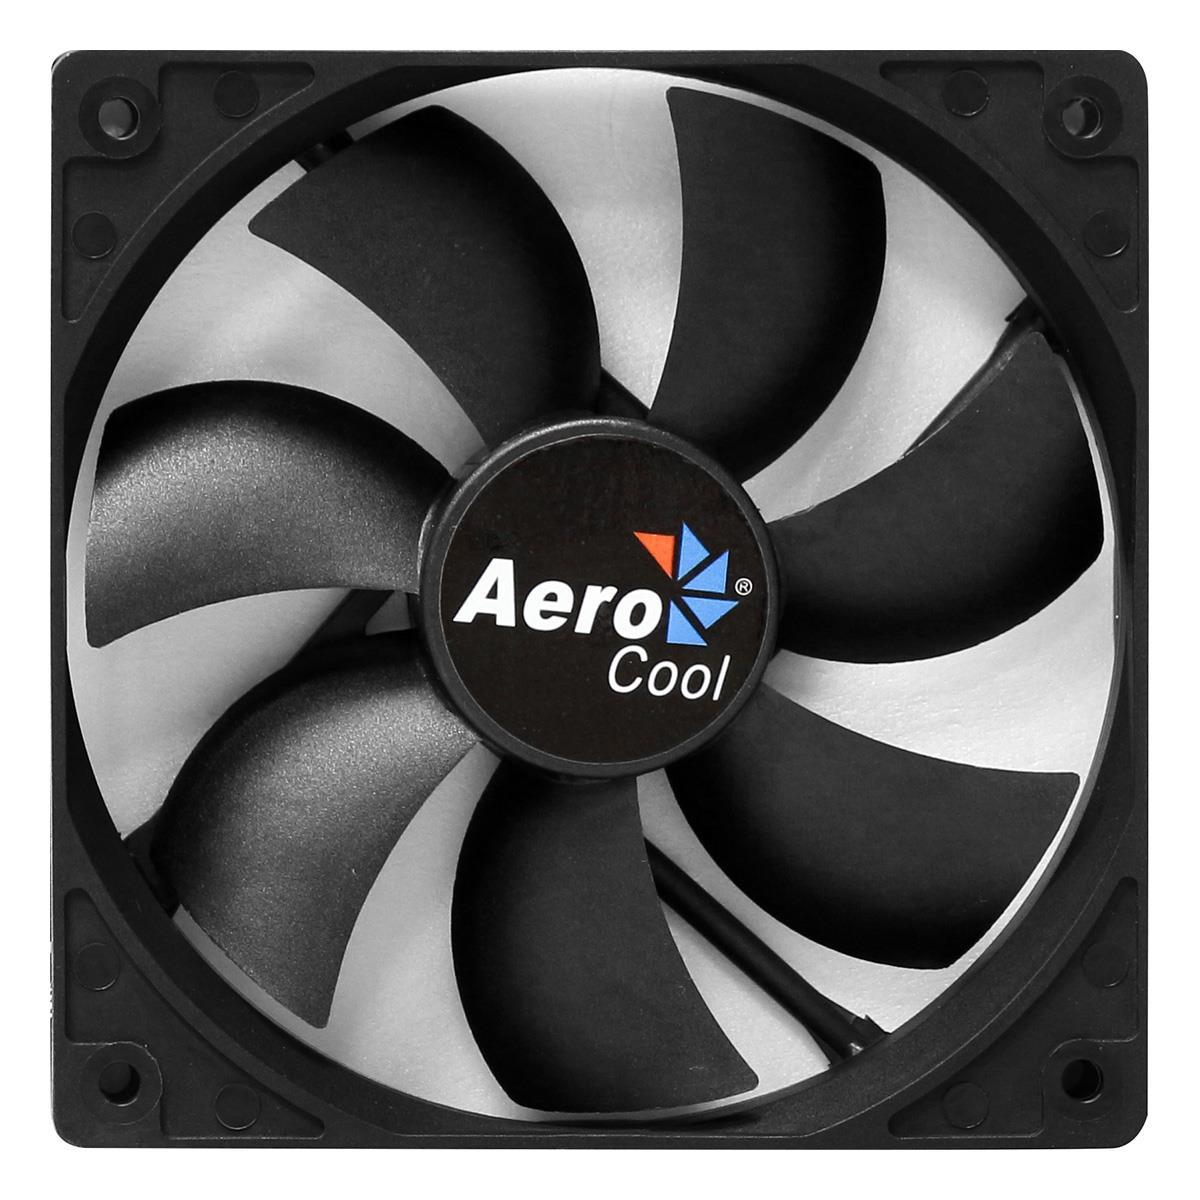 Aerocool Dark Force 9Cm Black Fan Retail Packed 7 Blades Anti-Vibration Screws